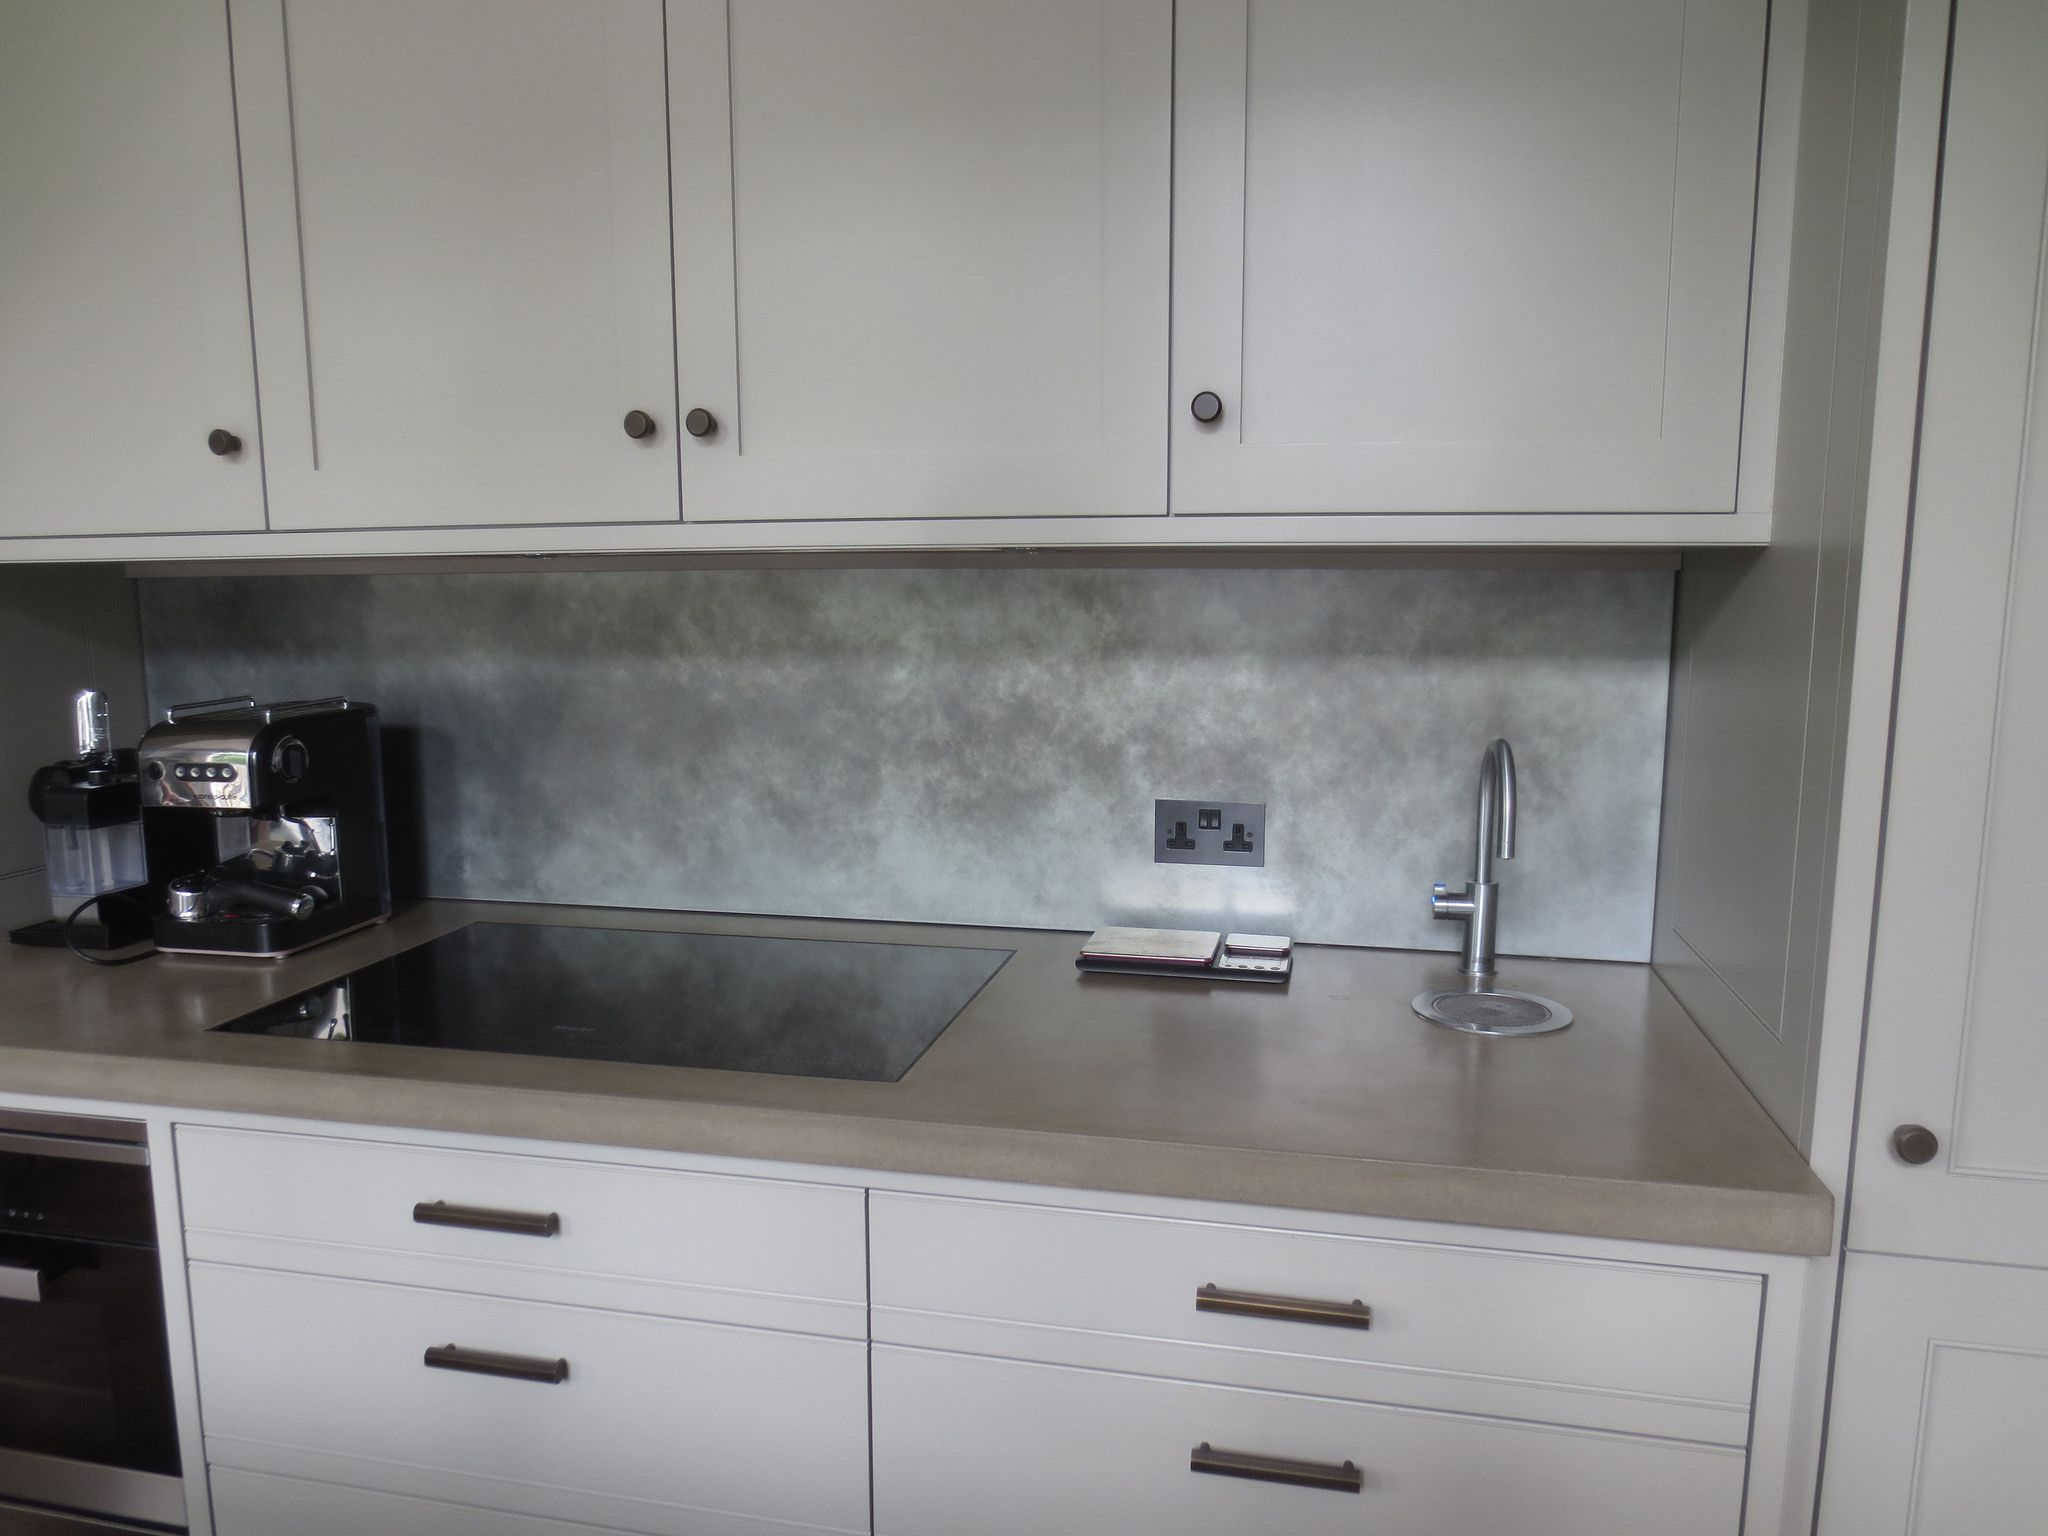 - 190 - Patina Zinc Splashback Metallic Backsplash, Kitchen Layout